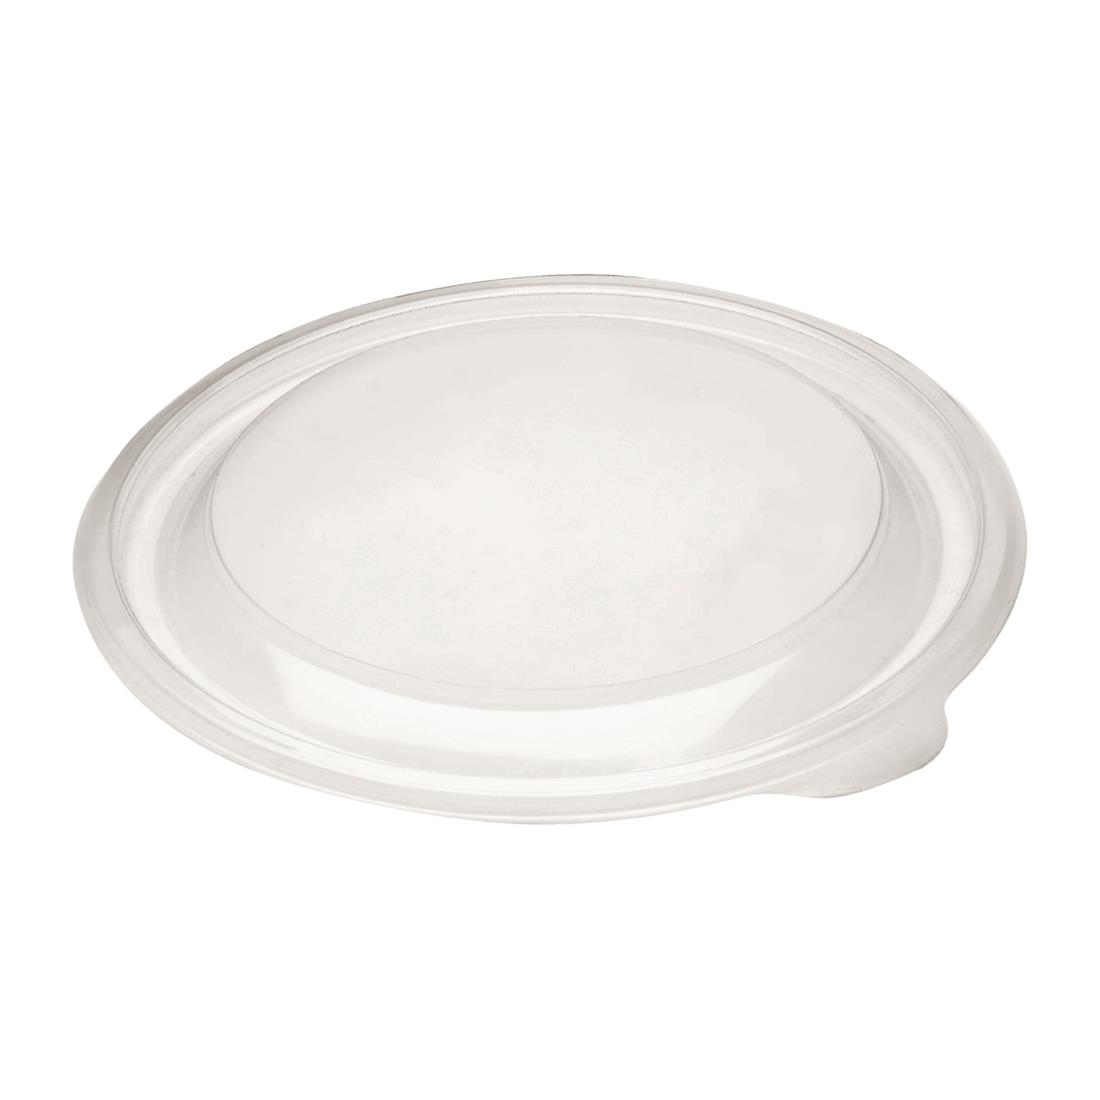 Image of Fastpac Medium Round Food Container Lids 750ml / 26oz and 1000ml / 35oz